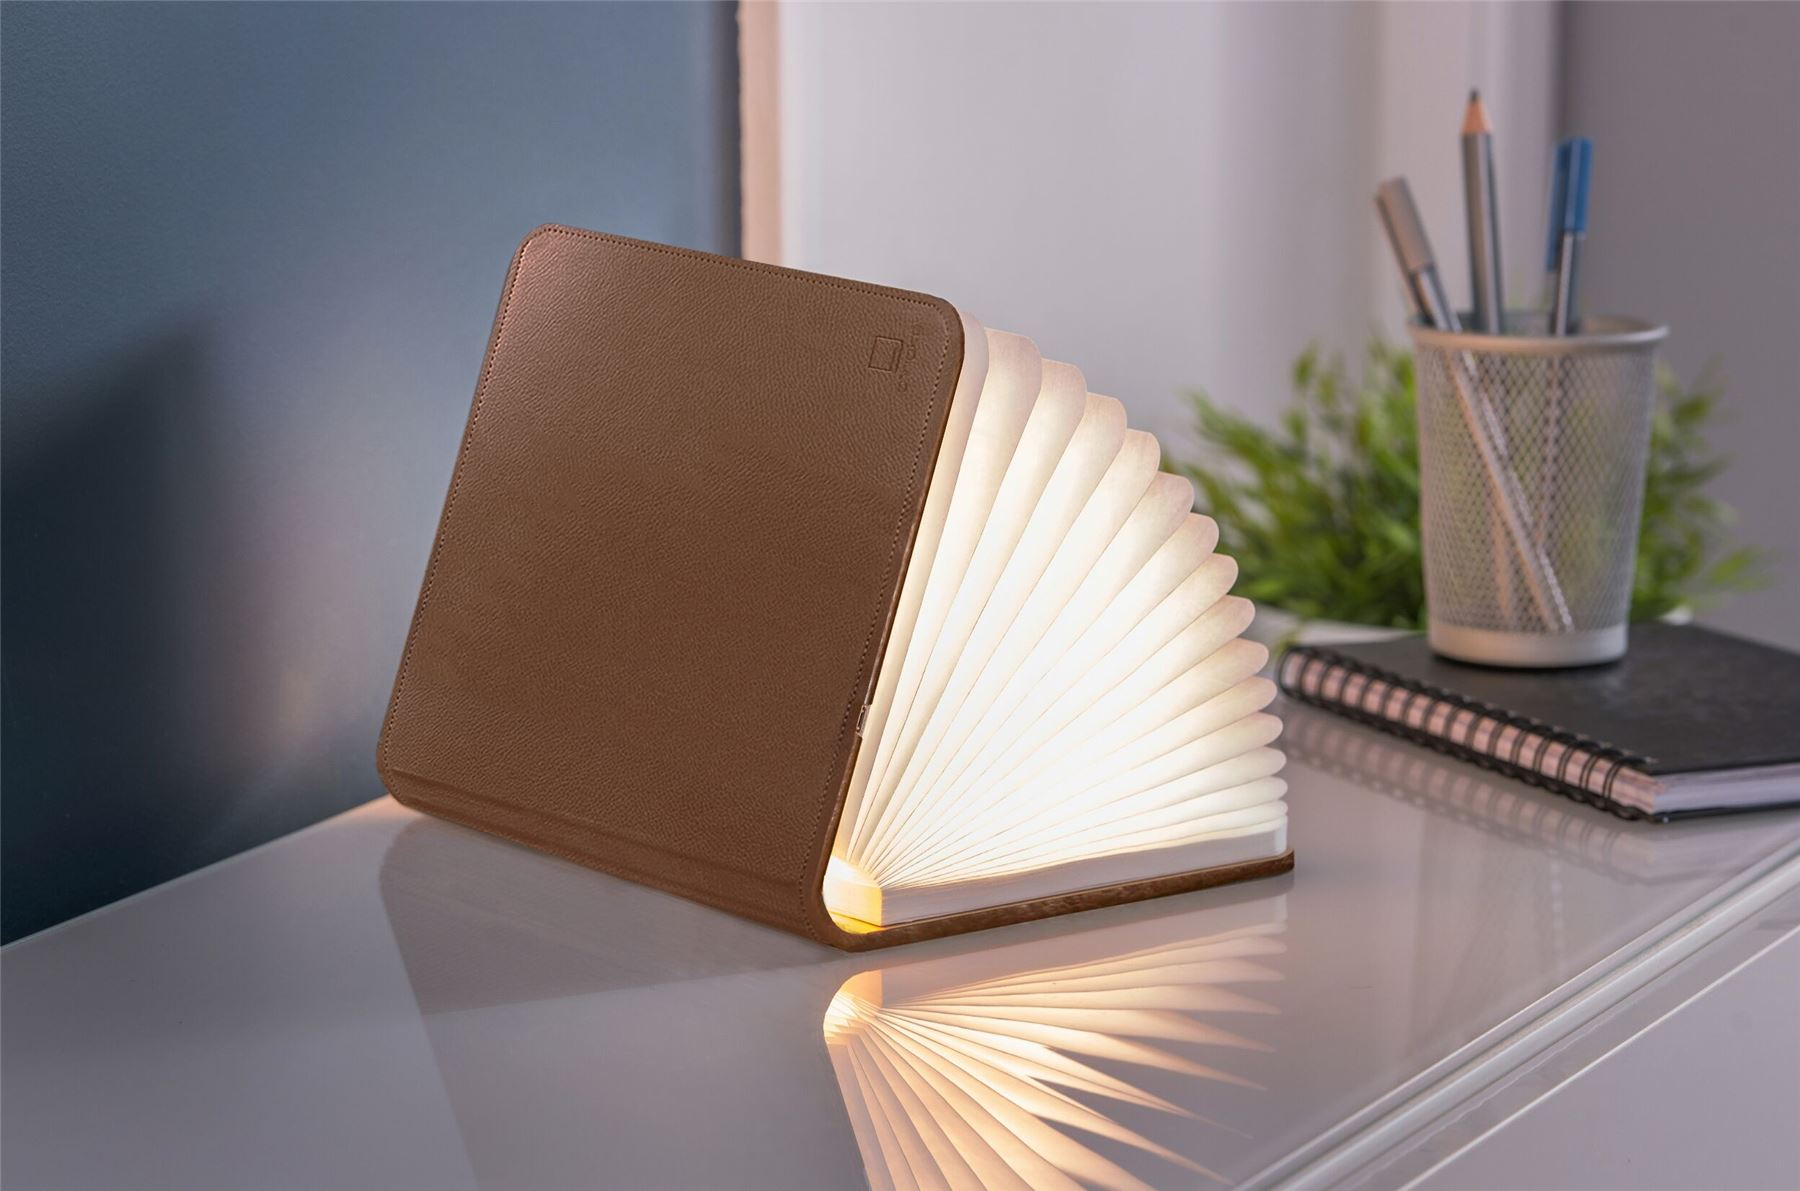 LED-Wood-Leather-Effect-Book-Desk-Lamp-Gingko-USB-Rechargeable-360-Light miniatuur 13